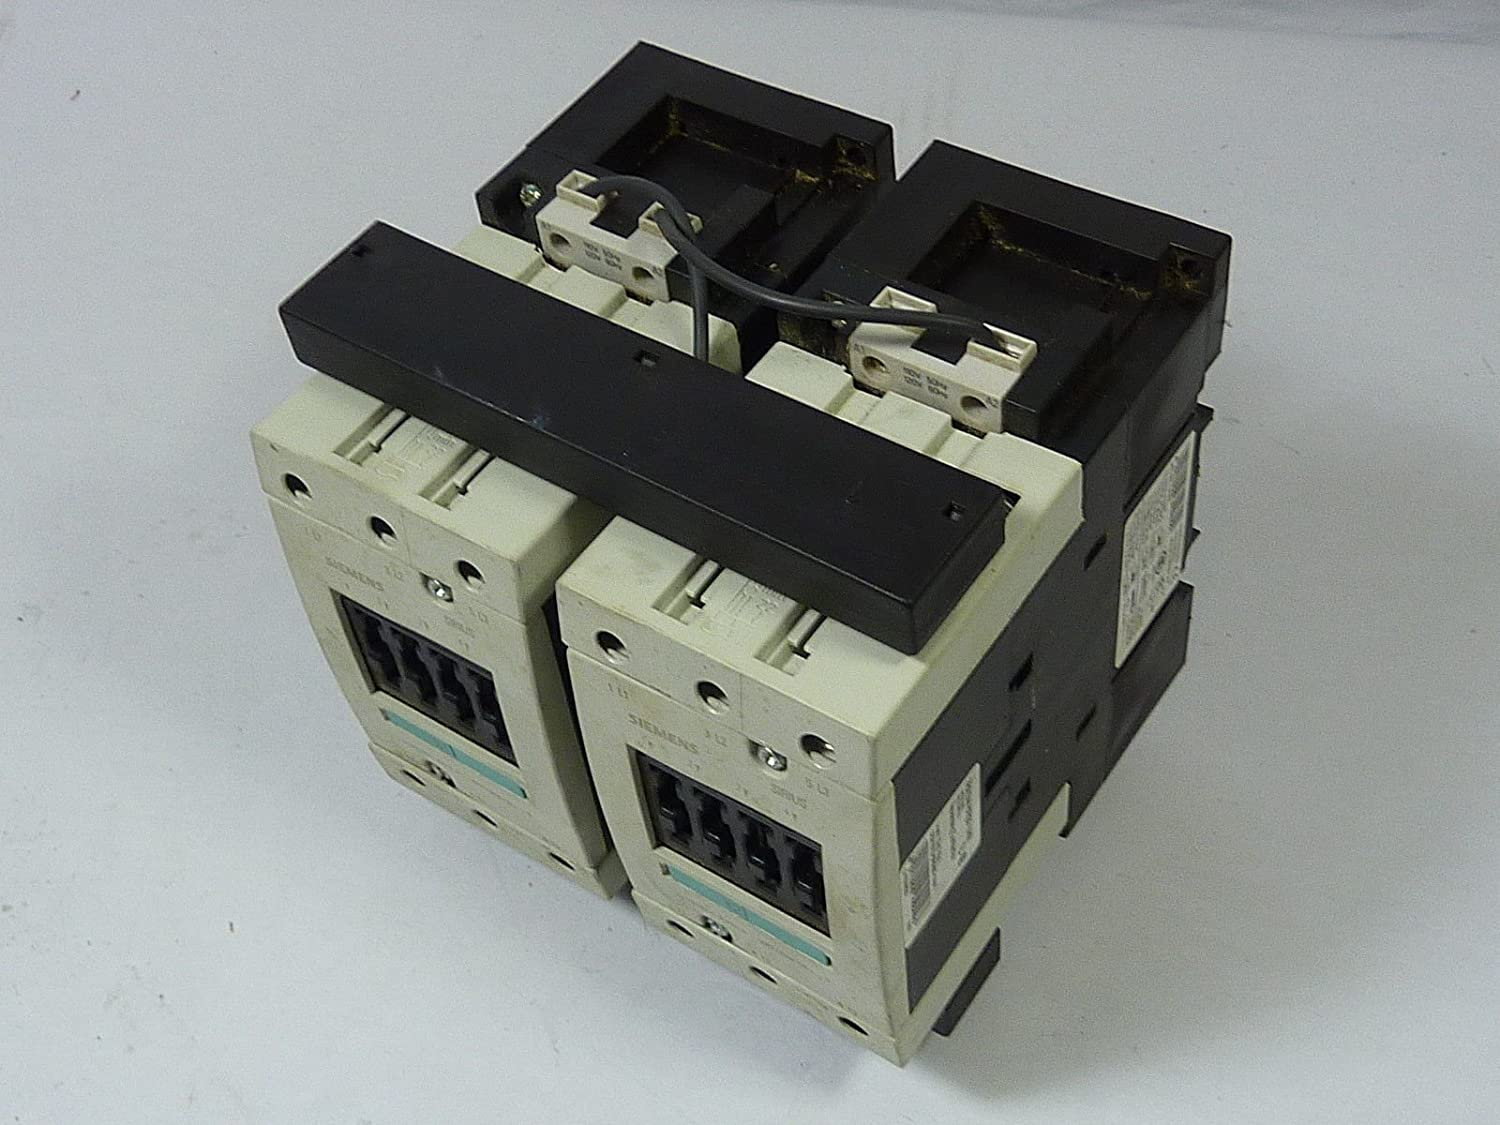 Fully Wired and Tested 24 V AC Operation S3 Size Siemens 3RA13 44-8XB30-1AC2 Motor Contactor Assembly 65A Maximum Inductive Current 50//60 Hz Rated Control Supply Voltage 3RA13448XB301AC2